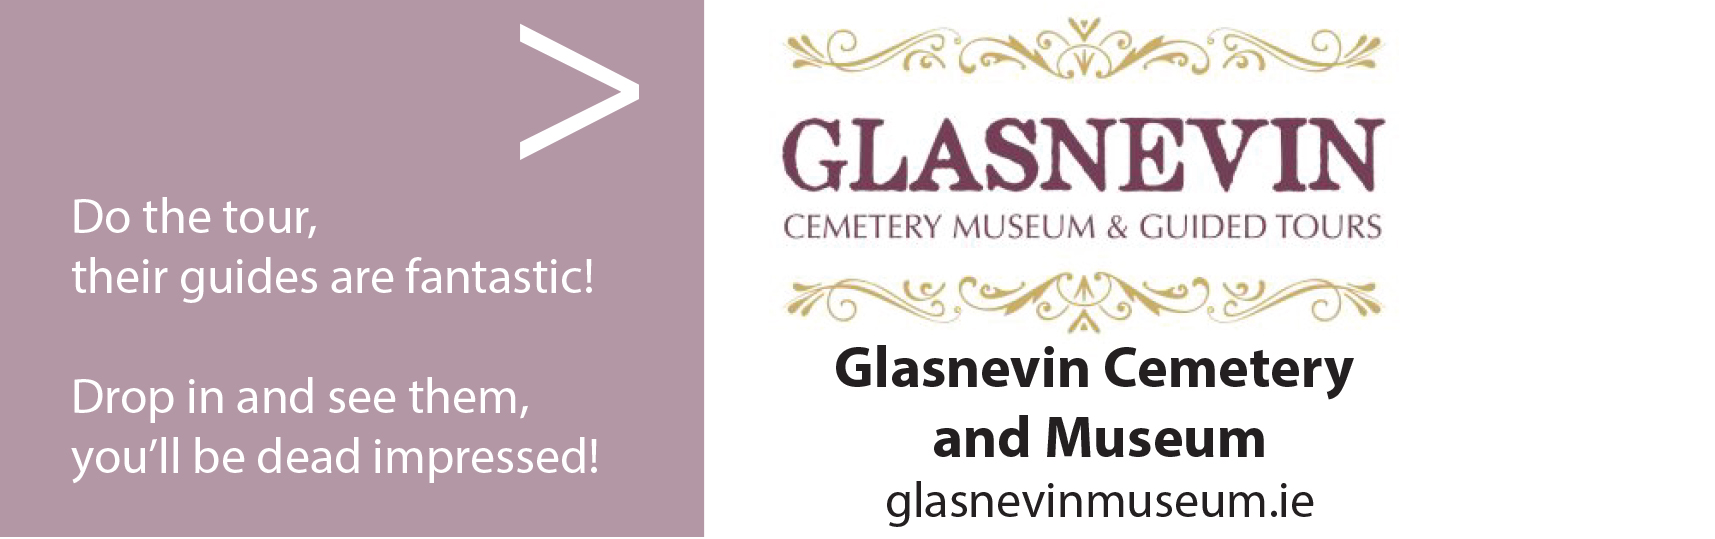 glasnevin cemetery and museum logo